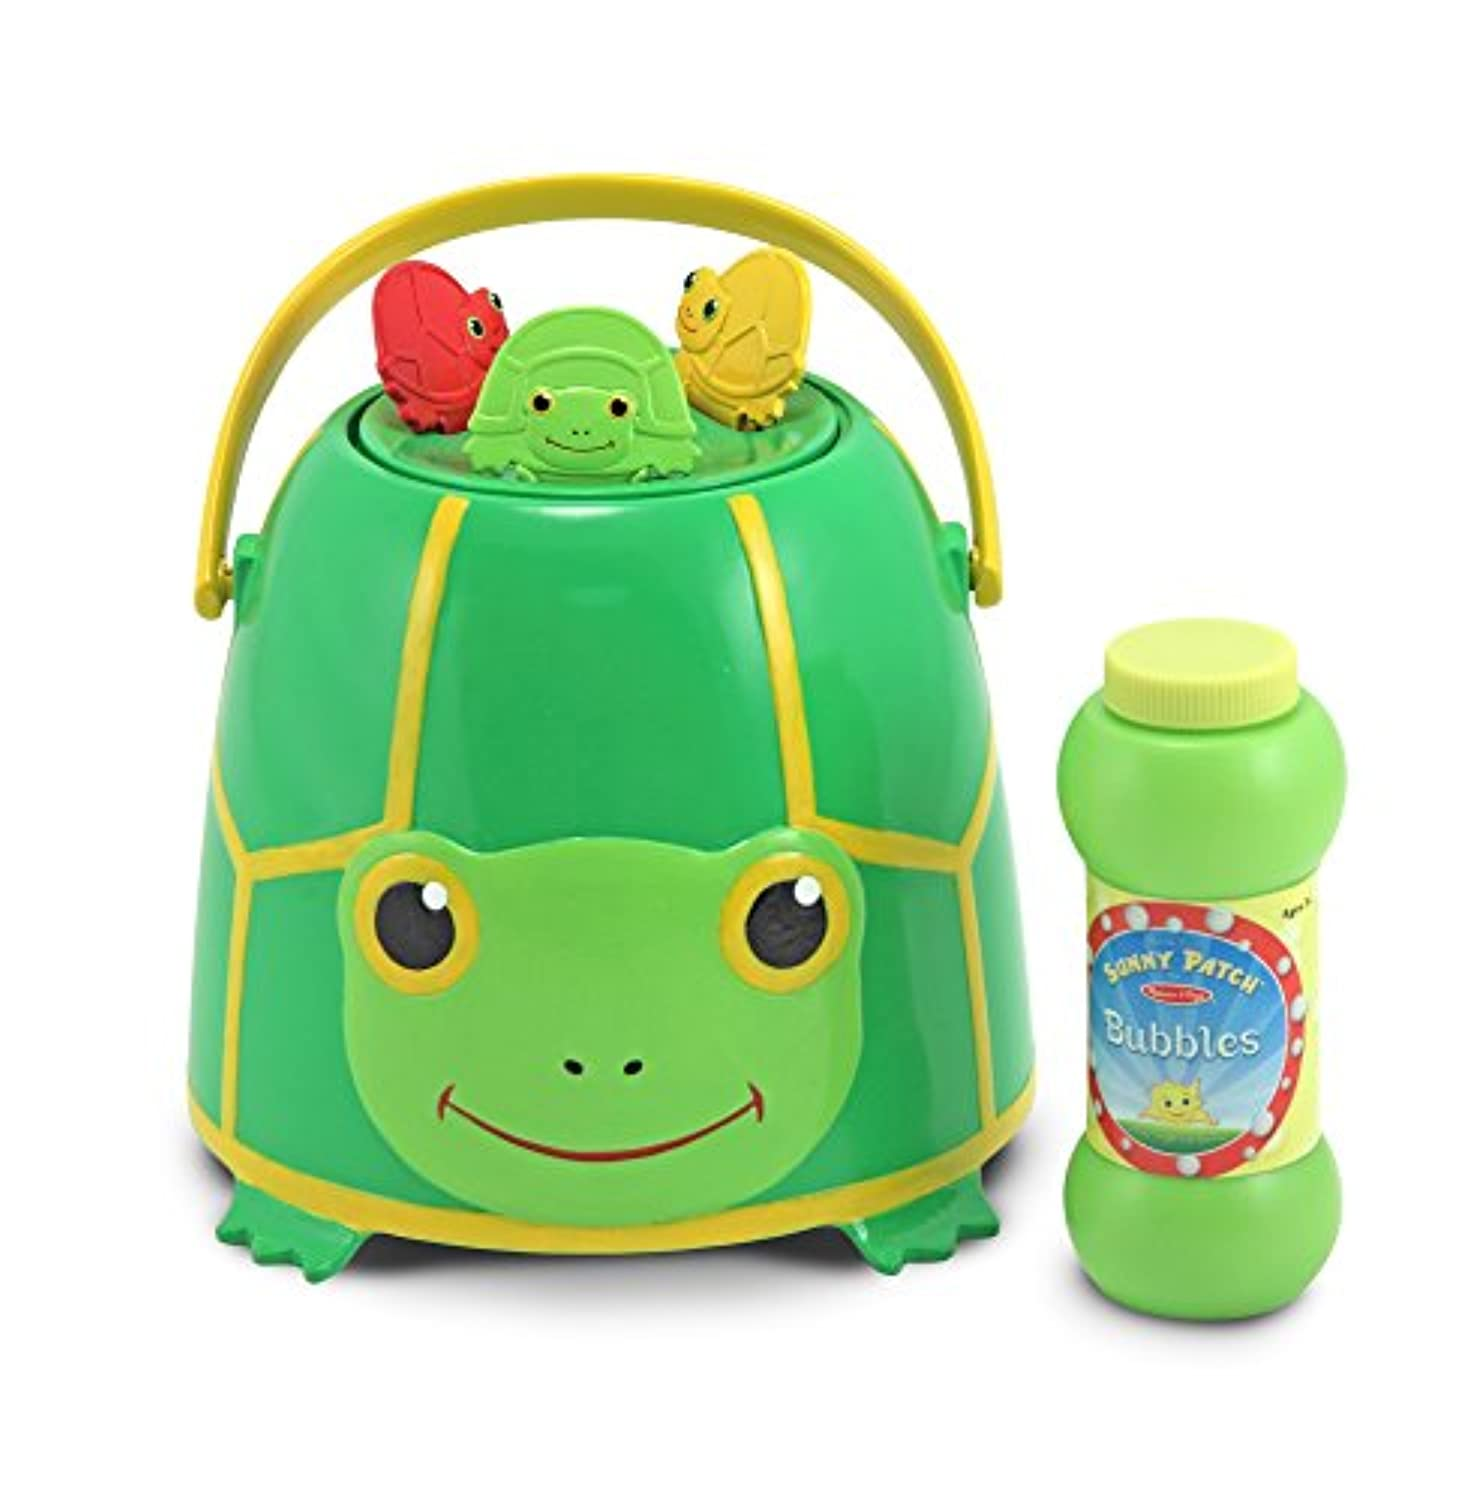 Tootle Turtle Bubble Bucket: Sunny Patch Bubble Fun